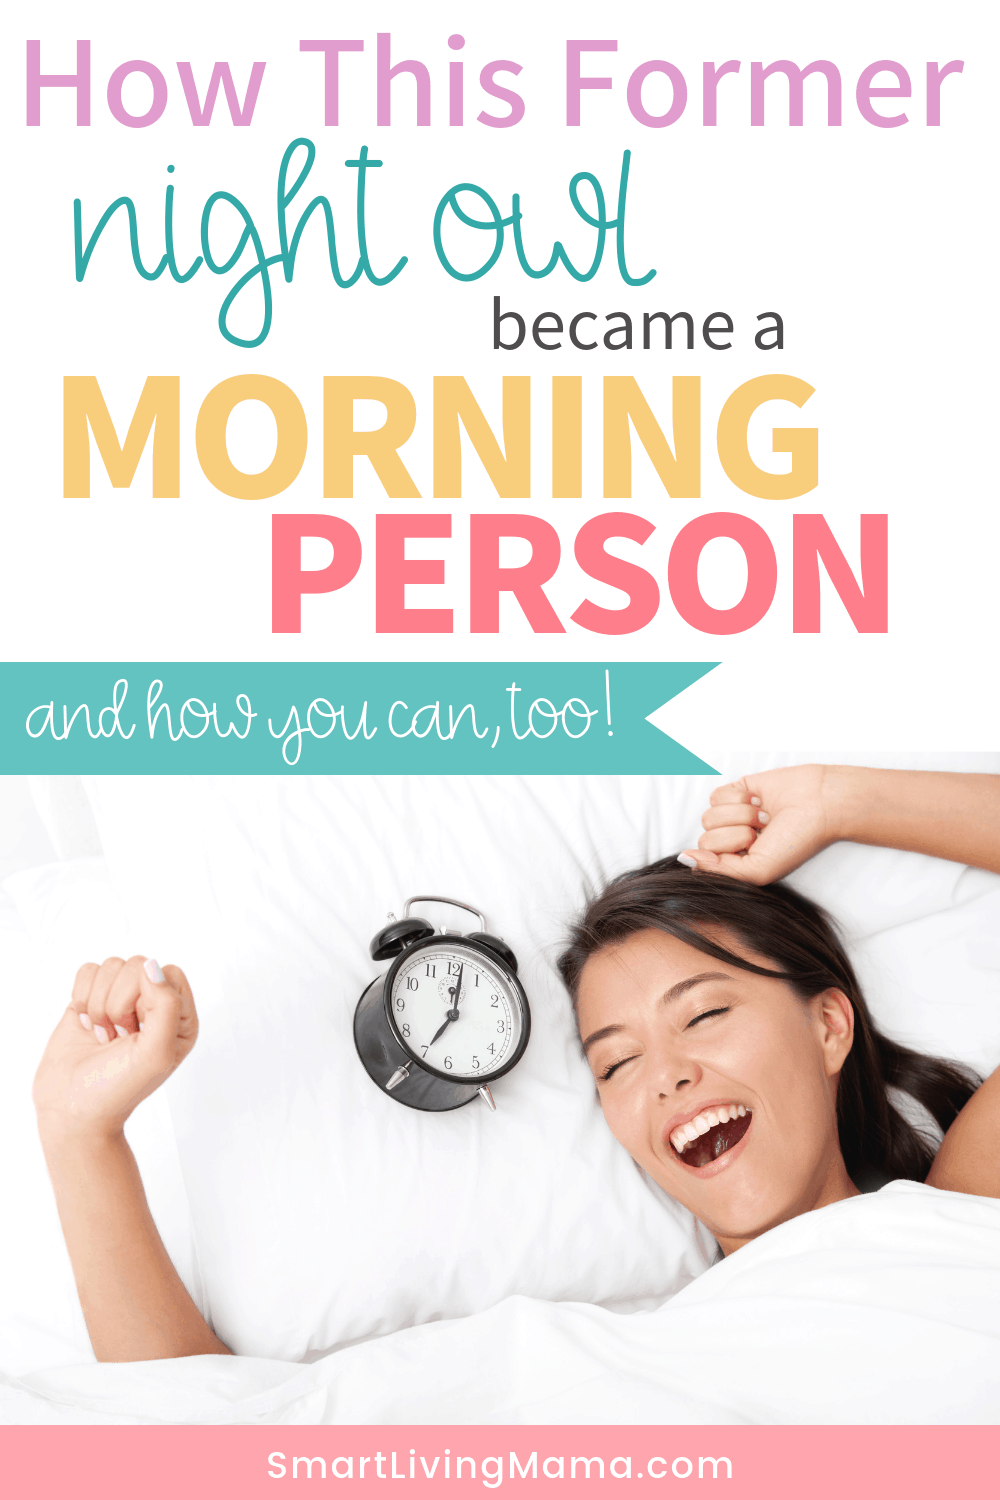 Are you a night owl who struggles to get up in the morning